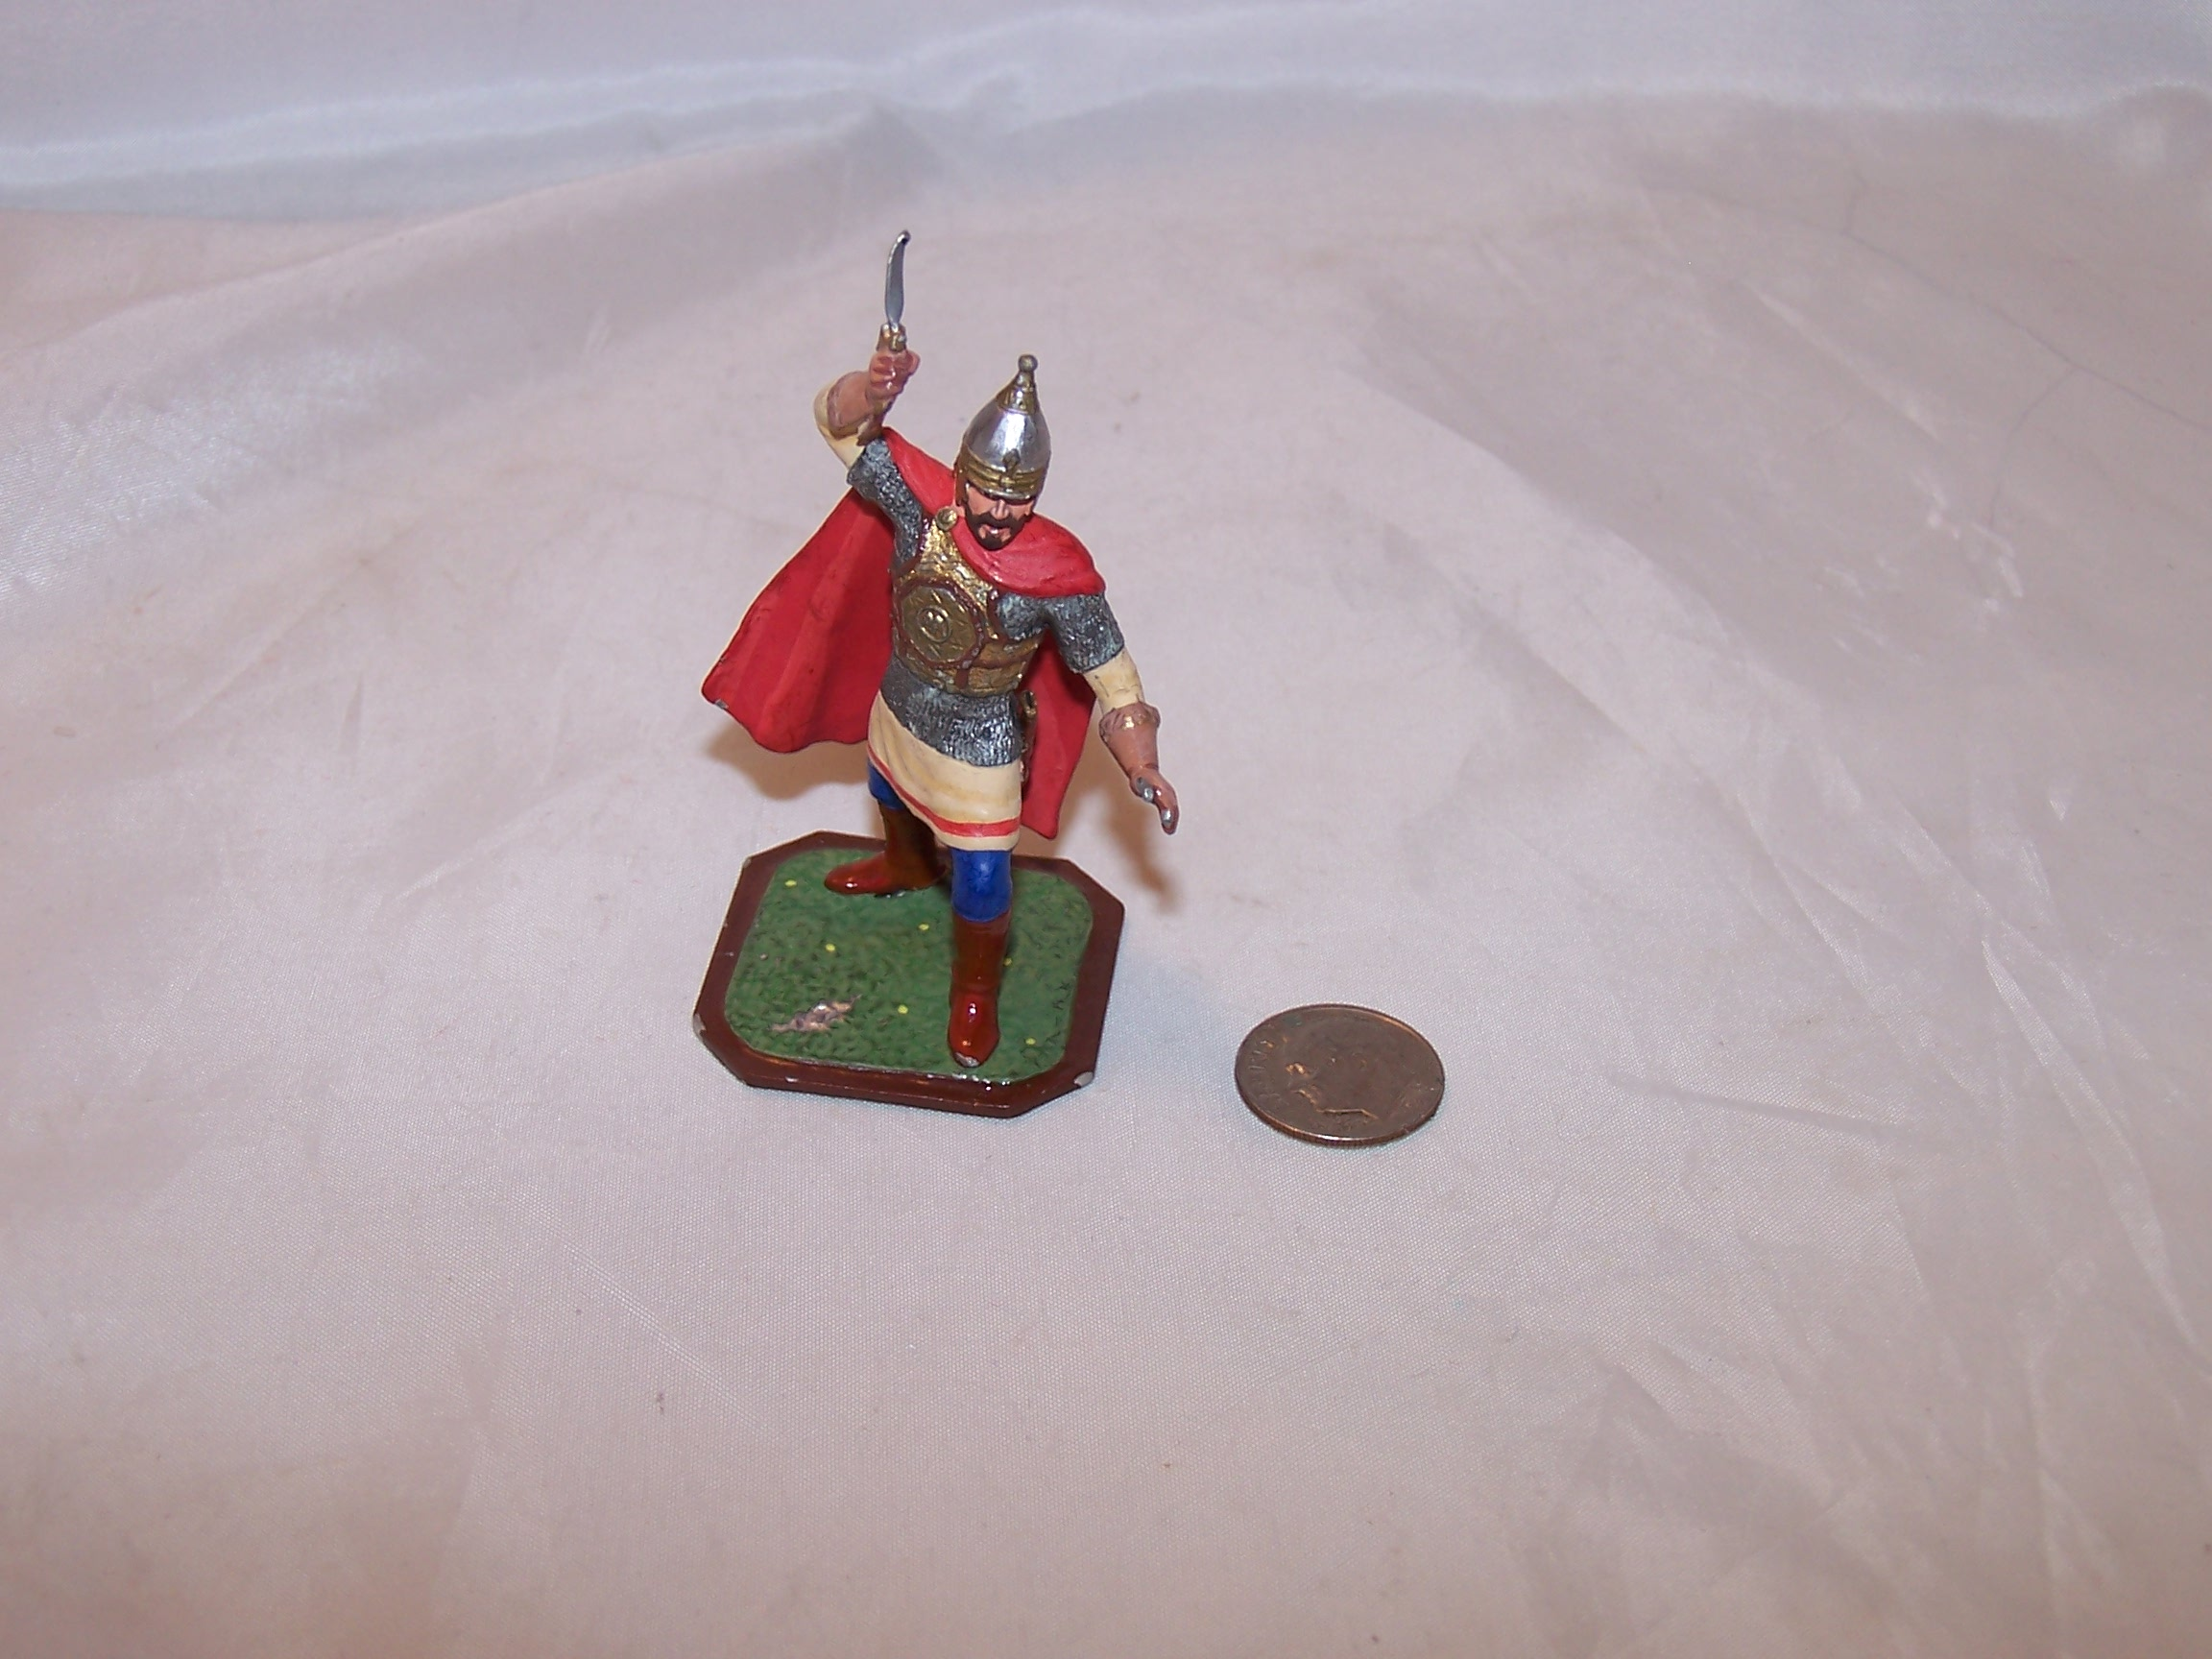 Image 5 of Roman Soldier, Painted Metal, Signed, Highly Detailed